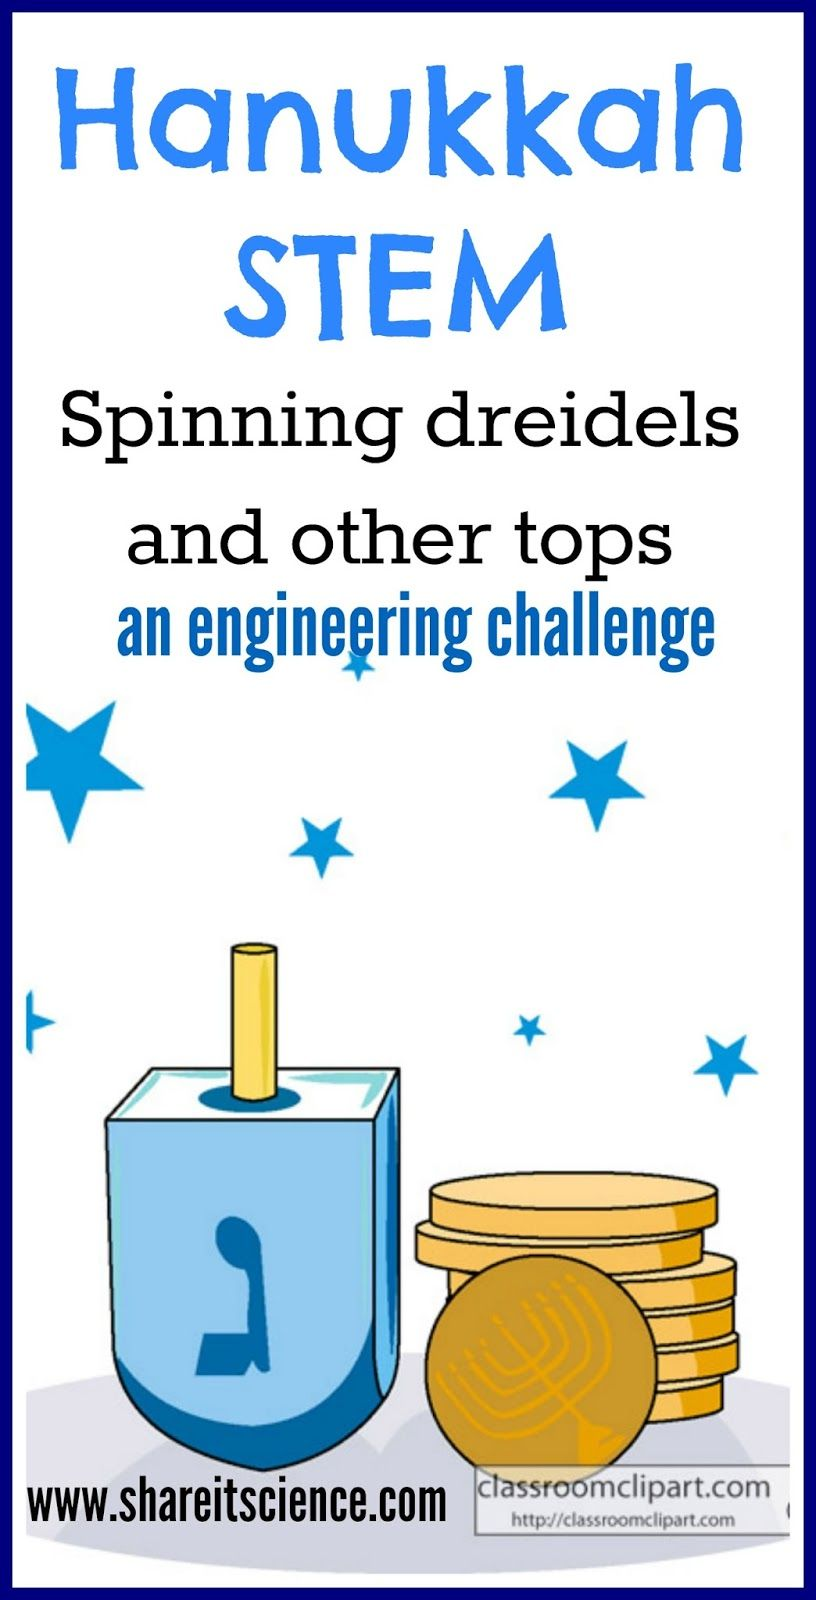 Saturday Science Experiment Spinning Dreidels And Other Tops Science Activities For Kids Science Experiments Hanukkah [ 1600 x 816 Pixel ]